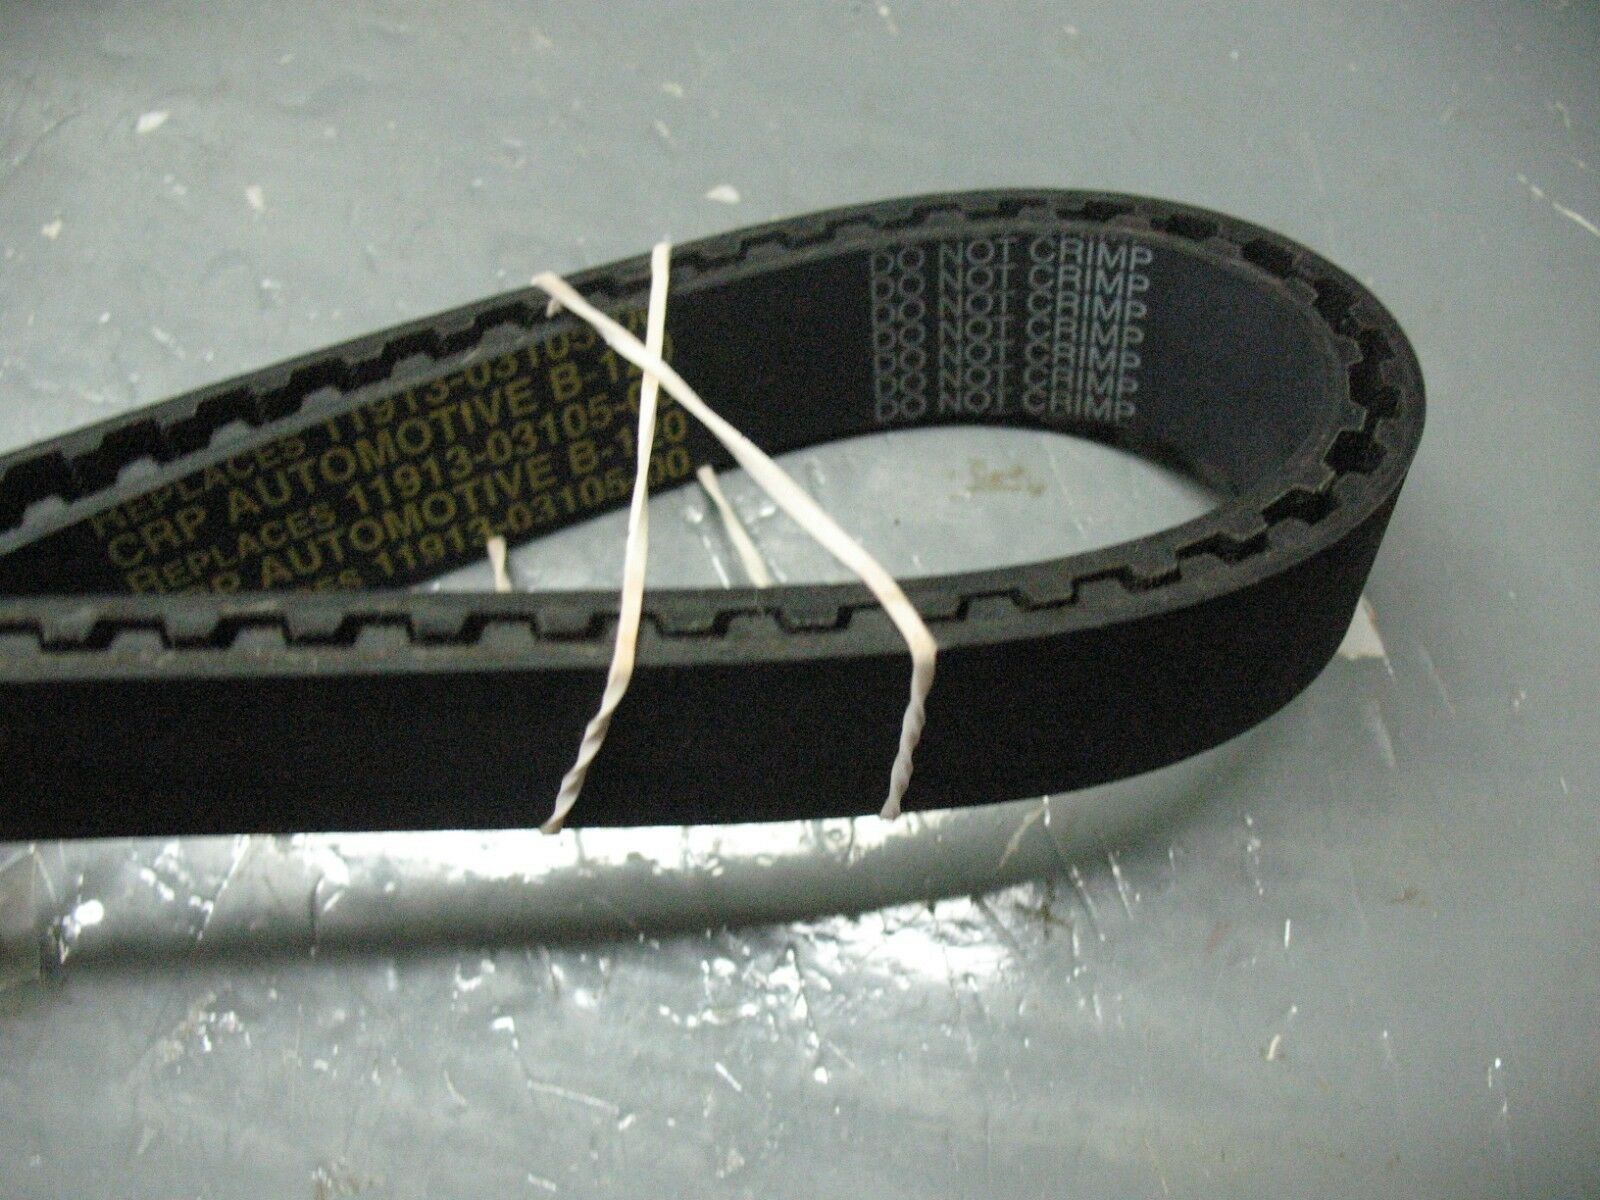 Used Alfa Romeo Timing Components For Sale Chain V 6 Belt Crp Automotive B 120 Replace 11913 0310500